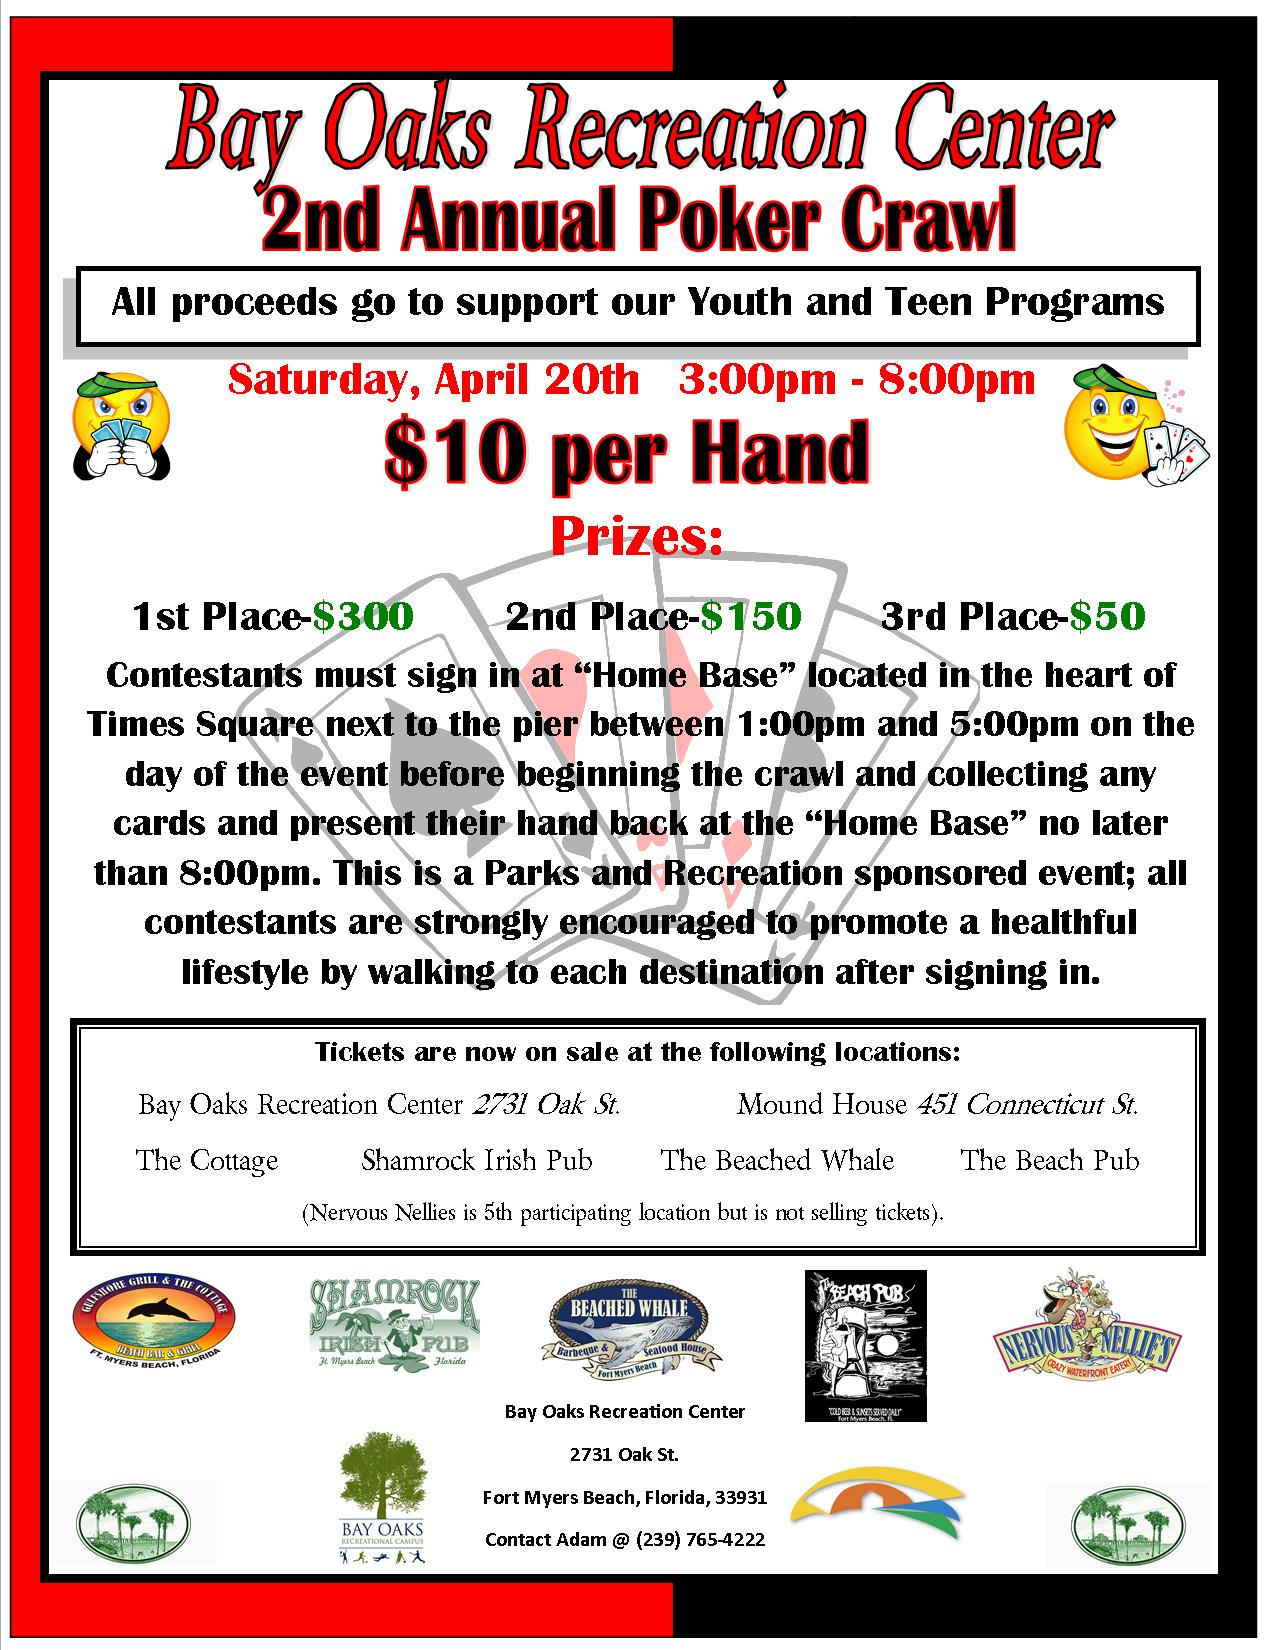 Poker Crawl Flyer.jpg